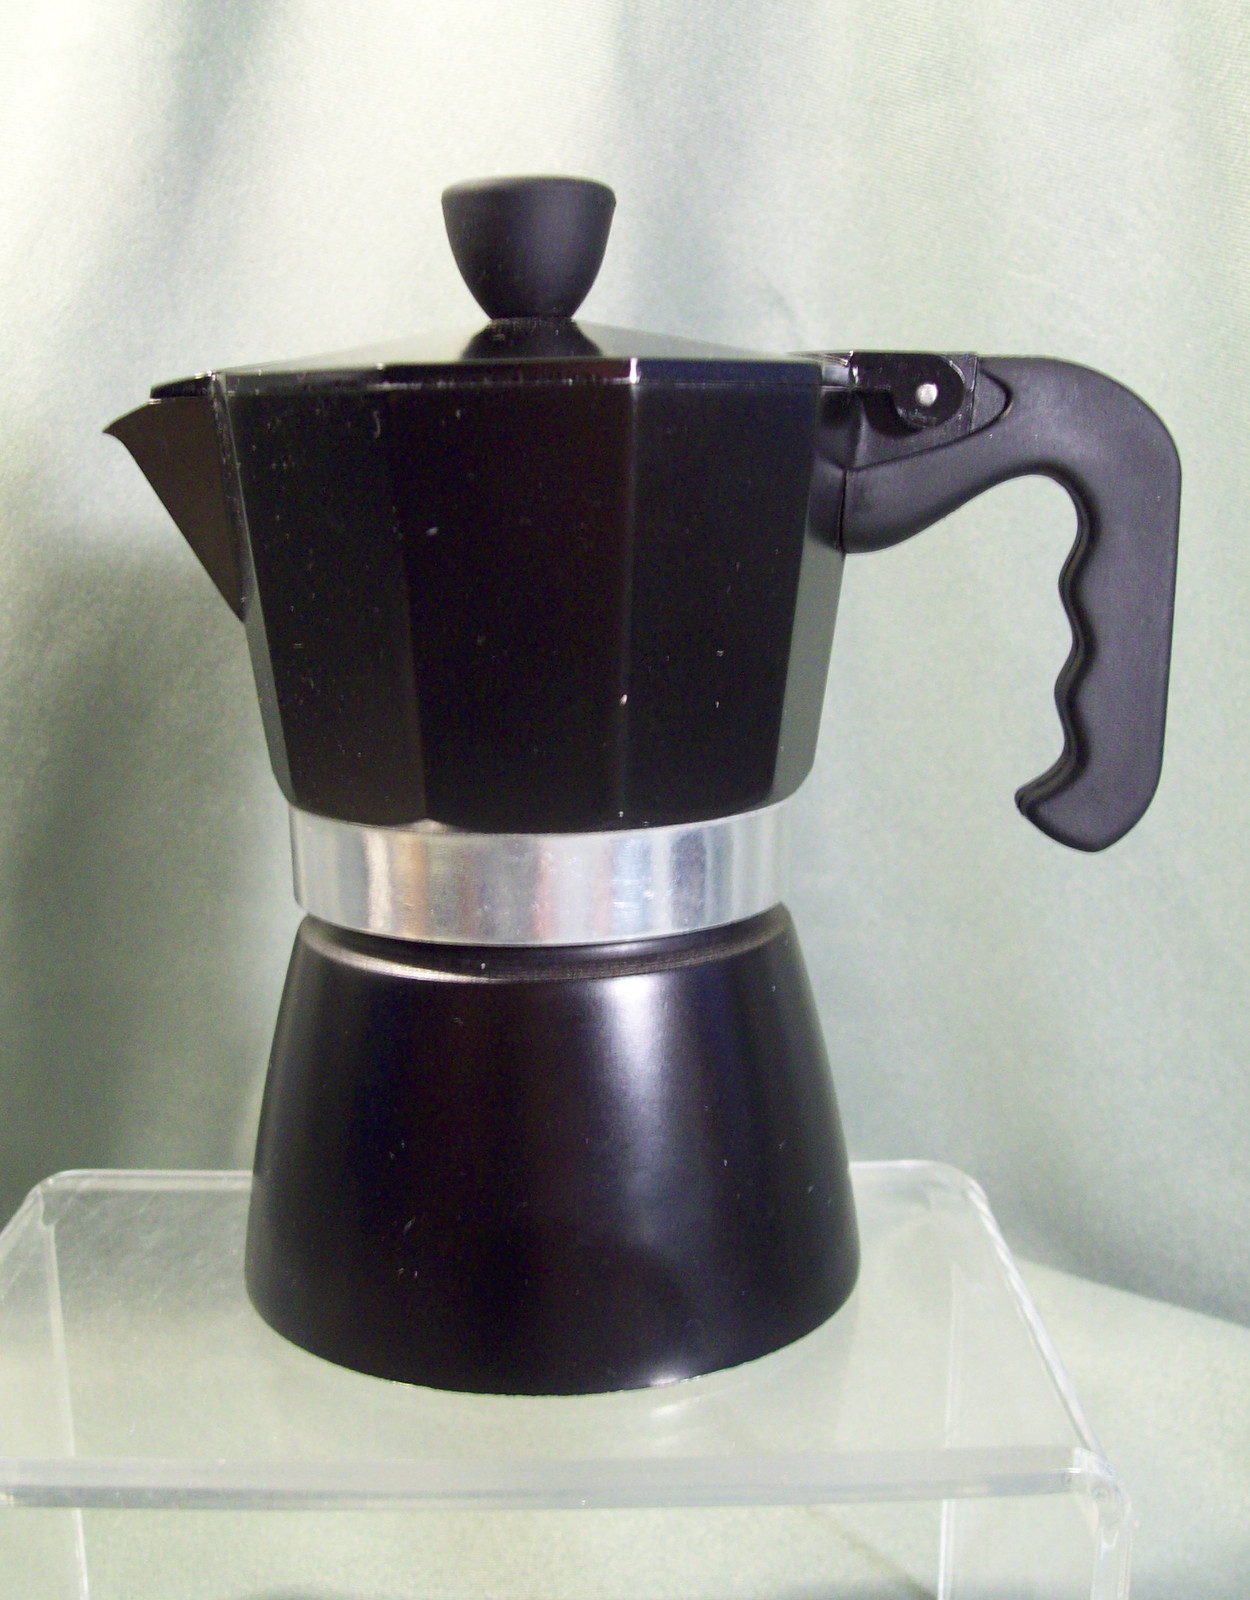 Cafetiere Espresso Maker ~ Pre owned la cafetiere black stovetop espresso maker